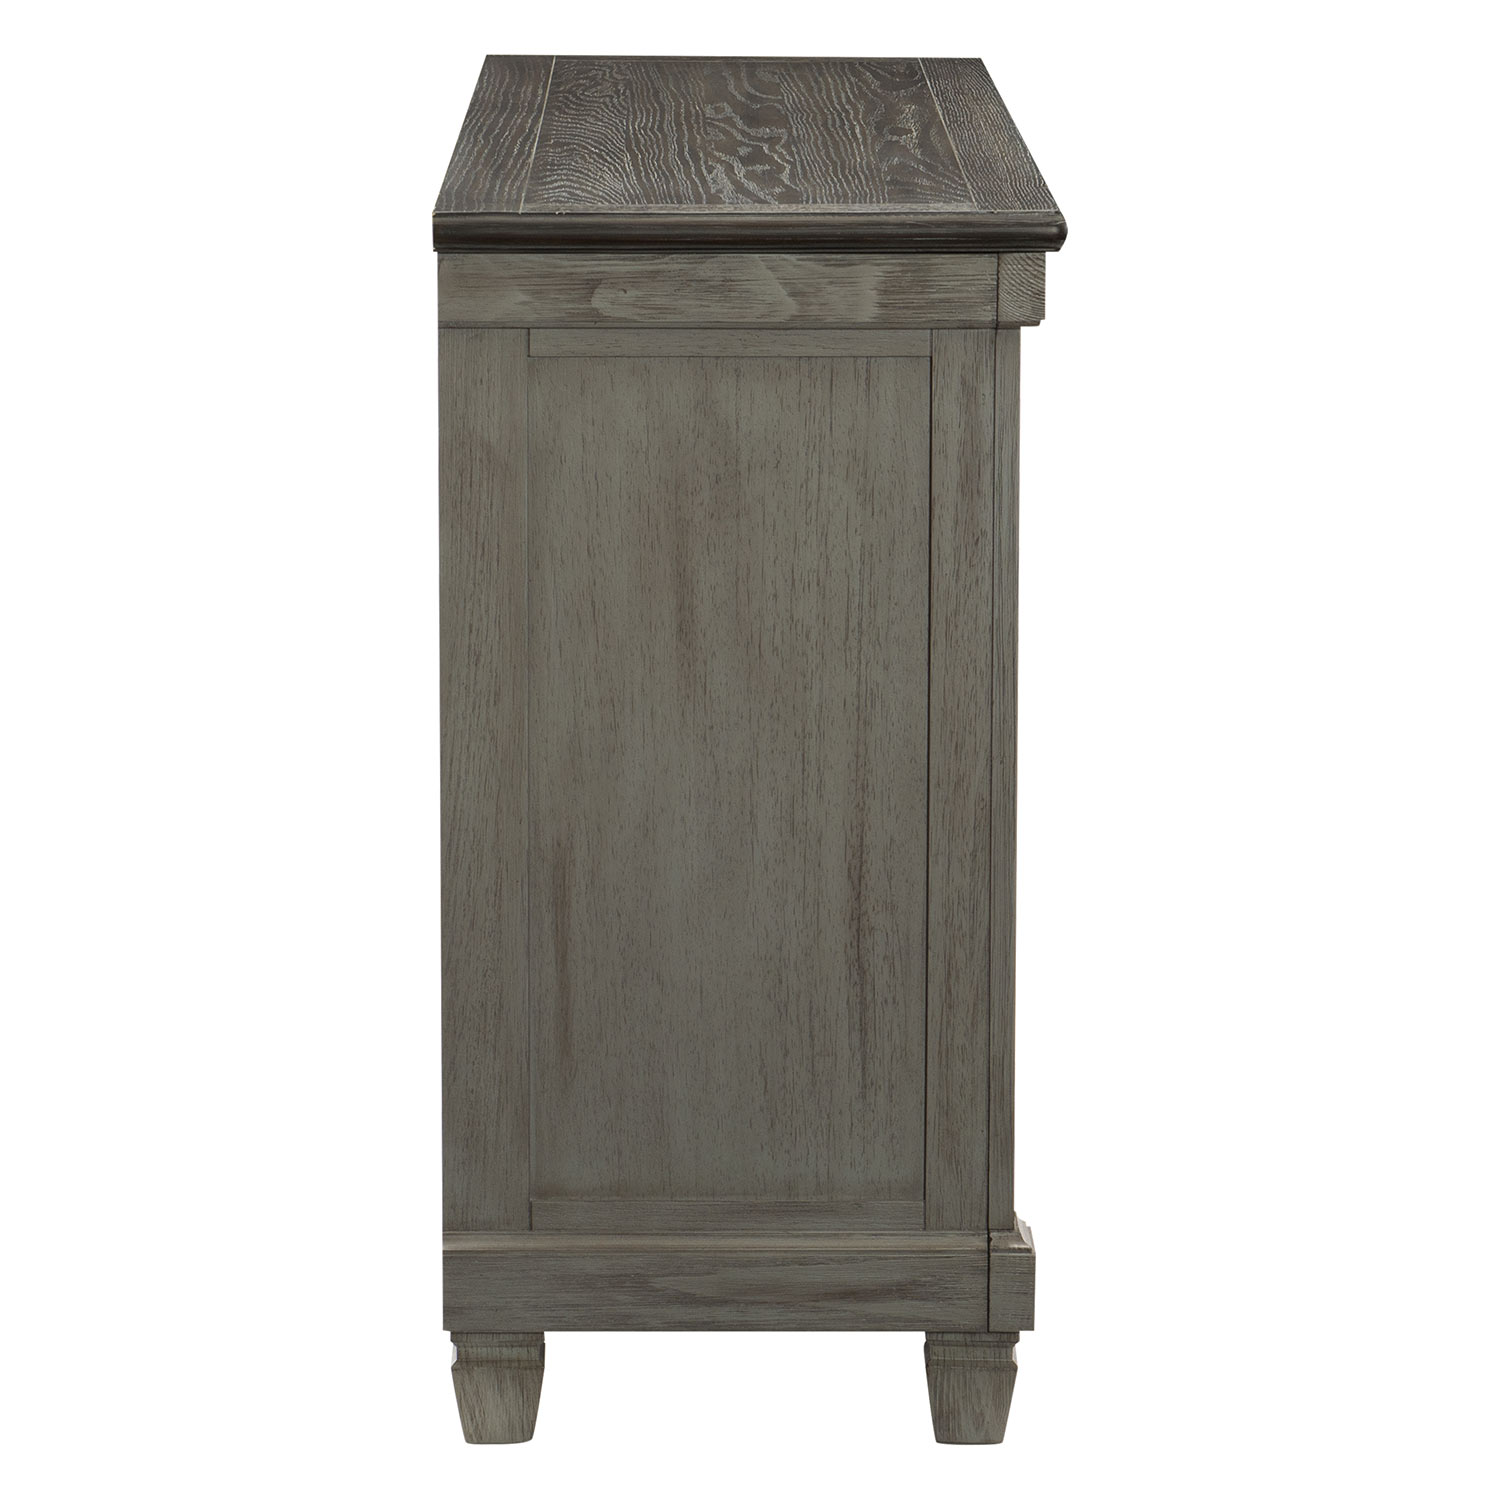 Homelegance Granby Server - Antique Gray and Coffee